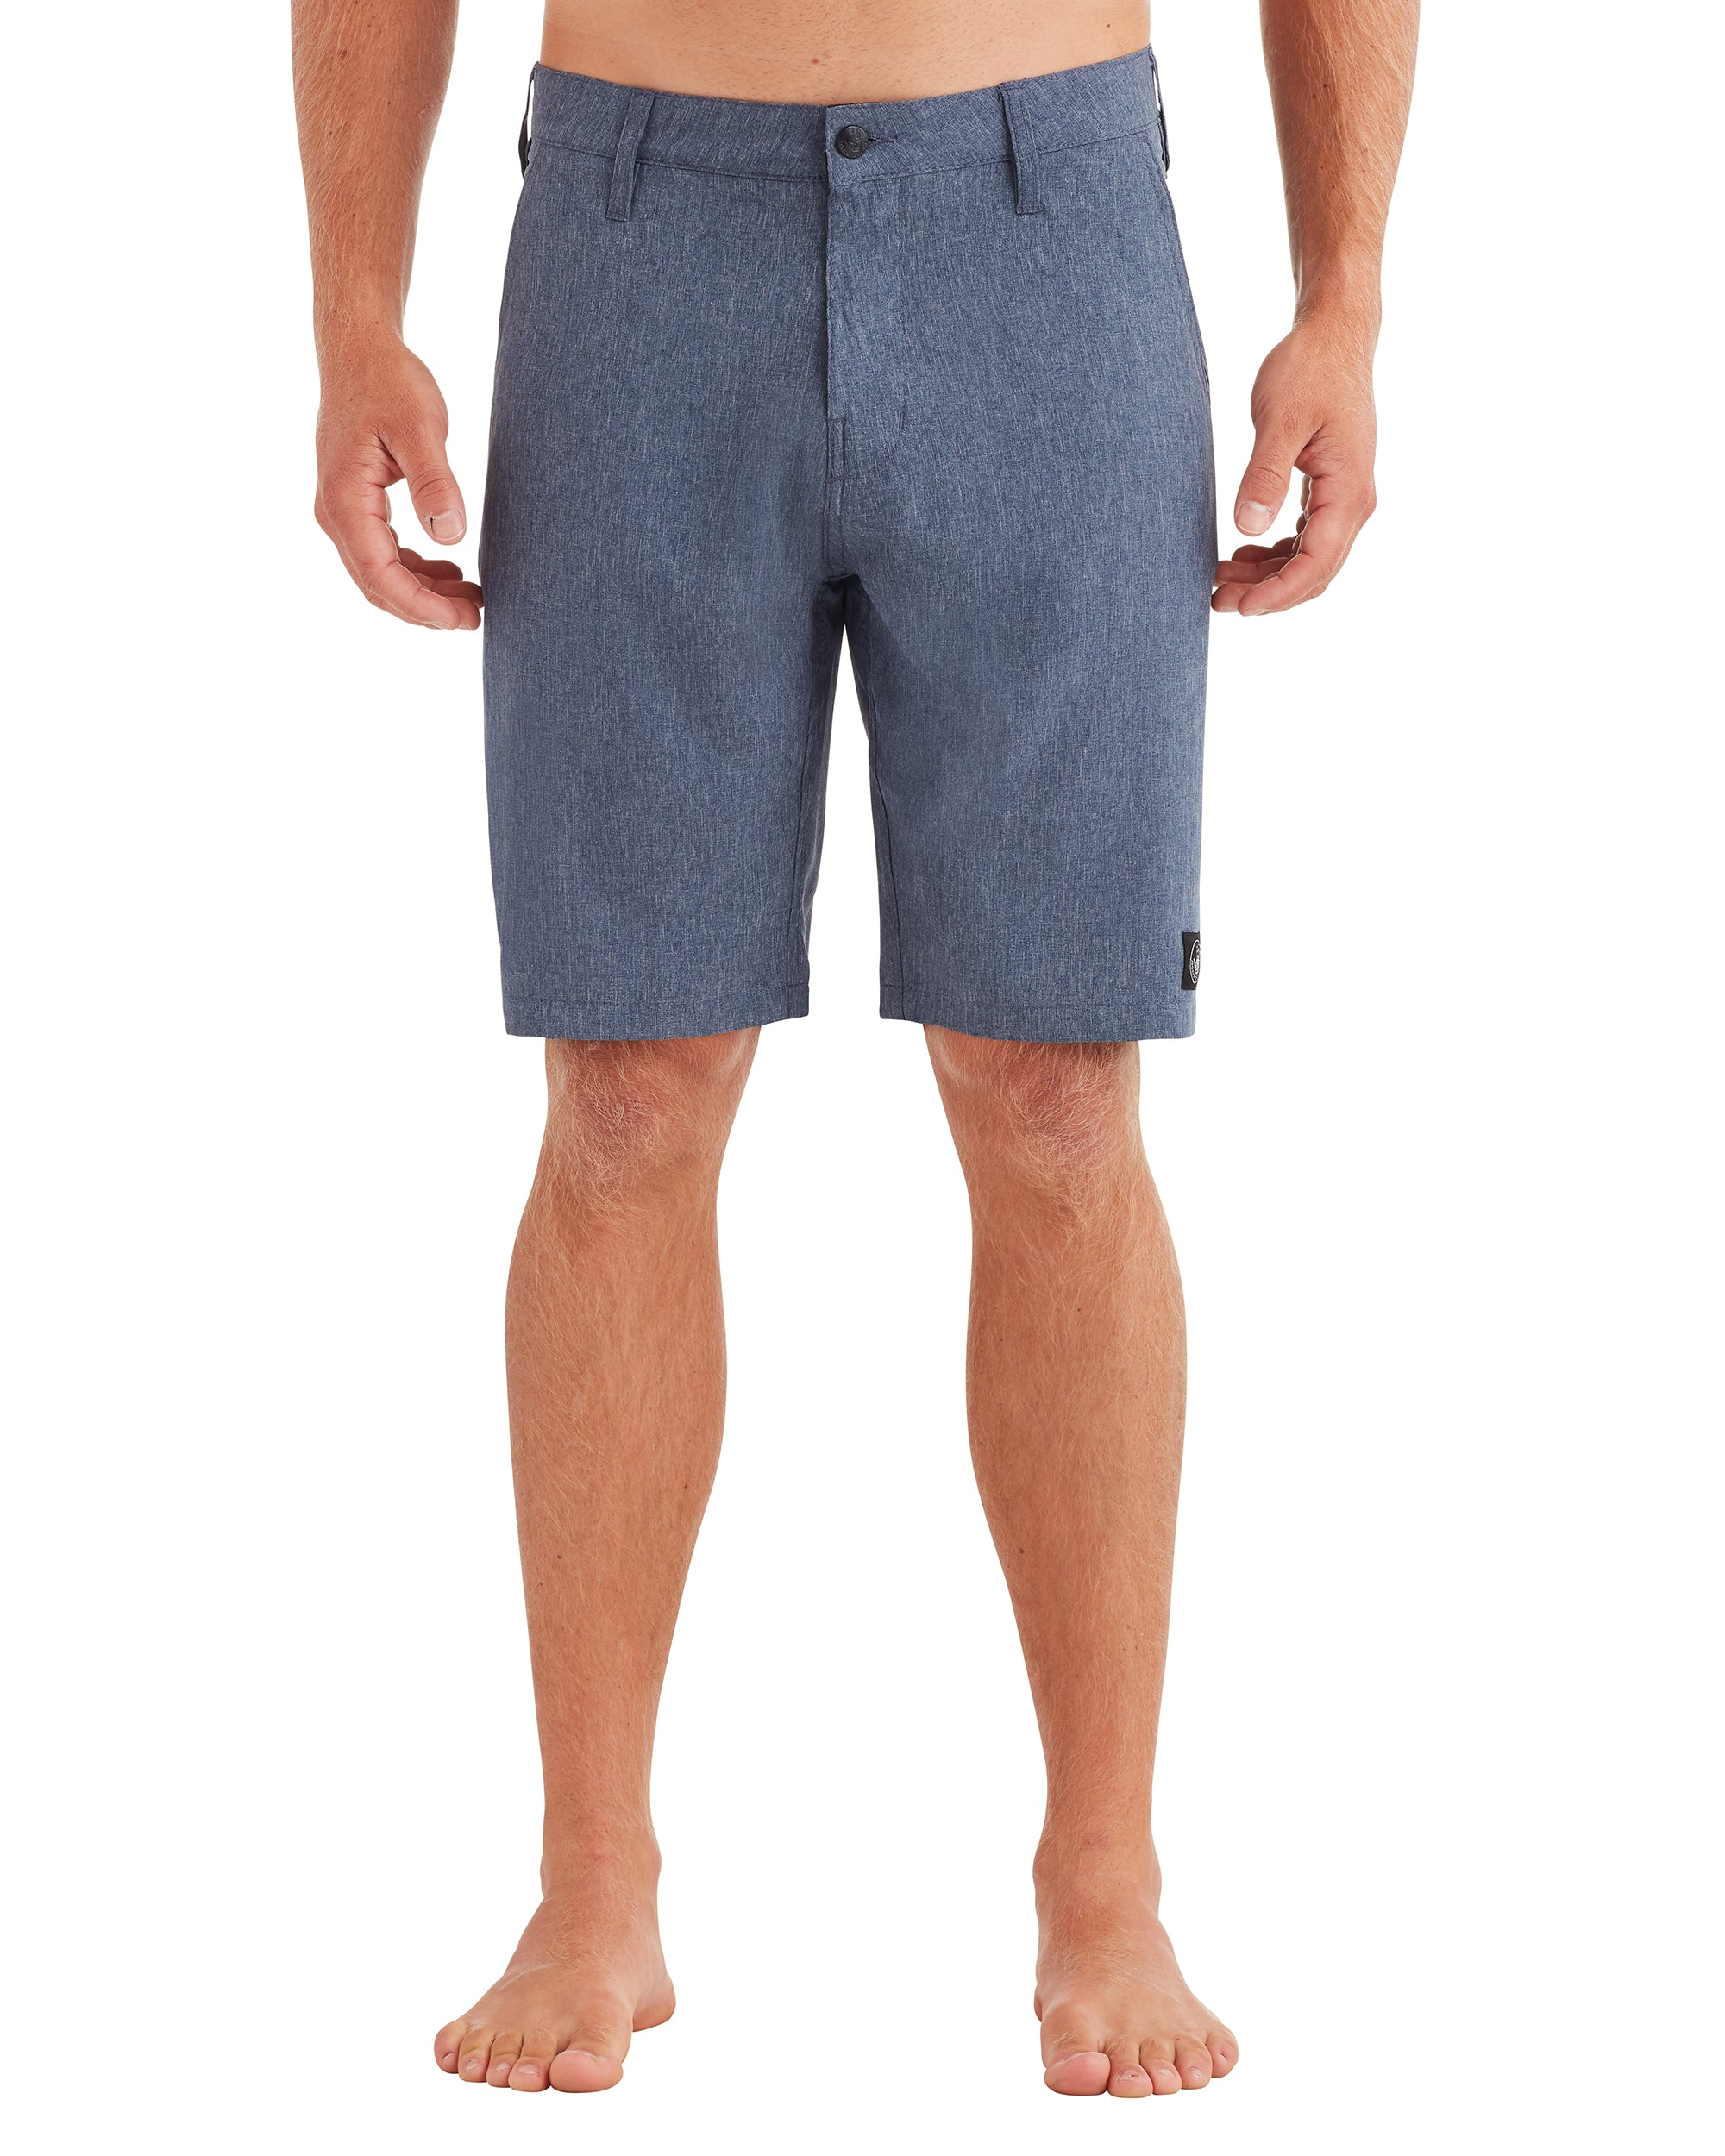 Men's Stretch Chambray Hybrid Swim Short - Marine